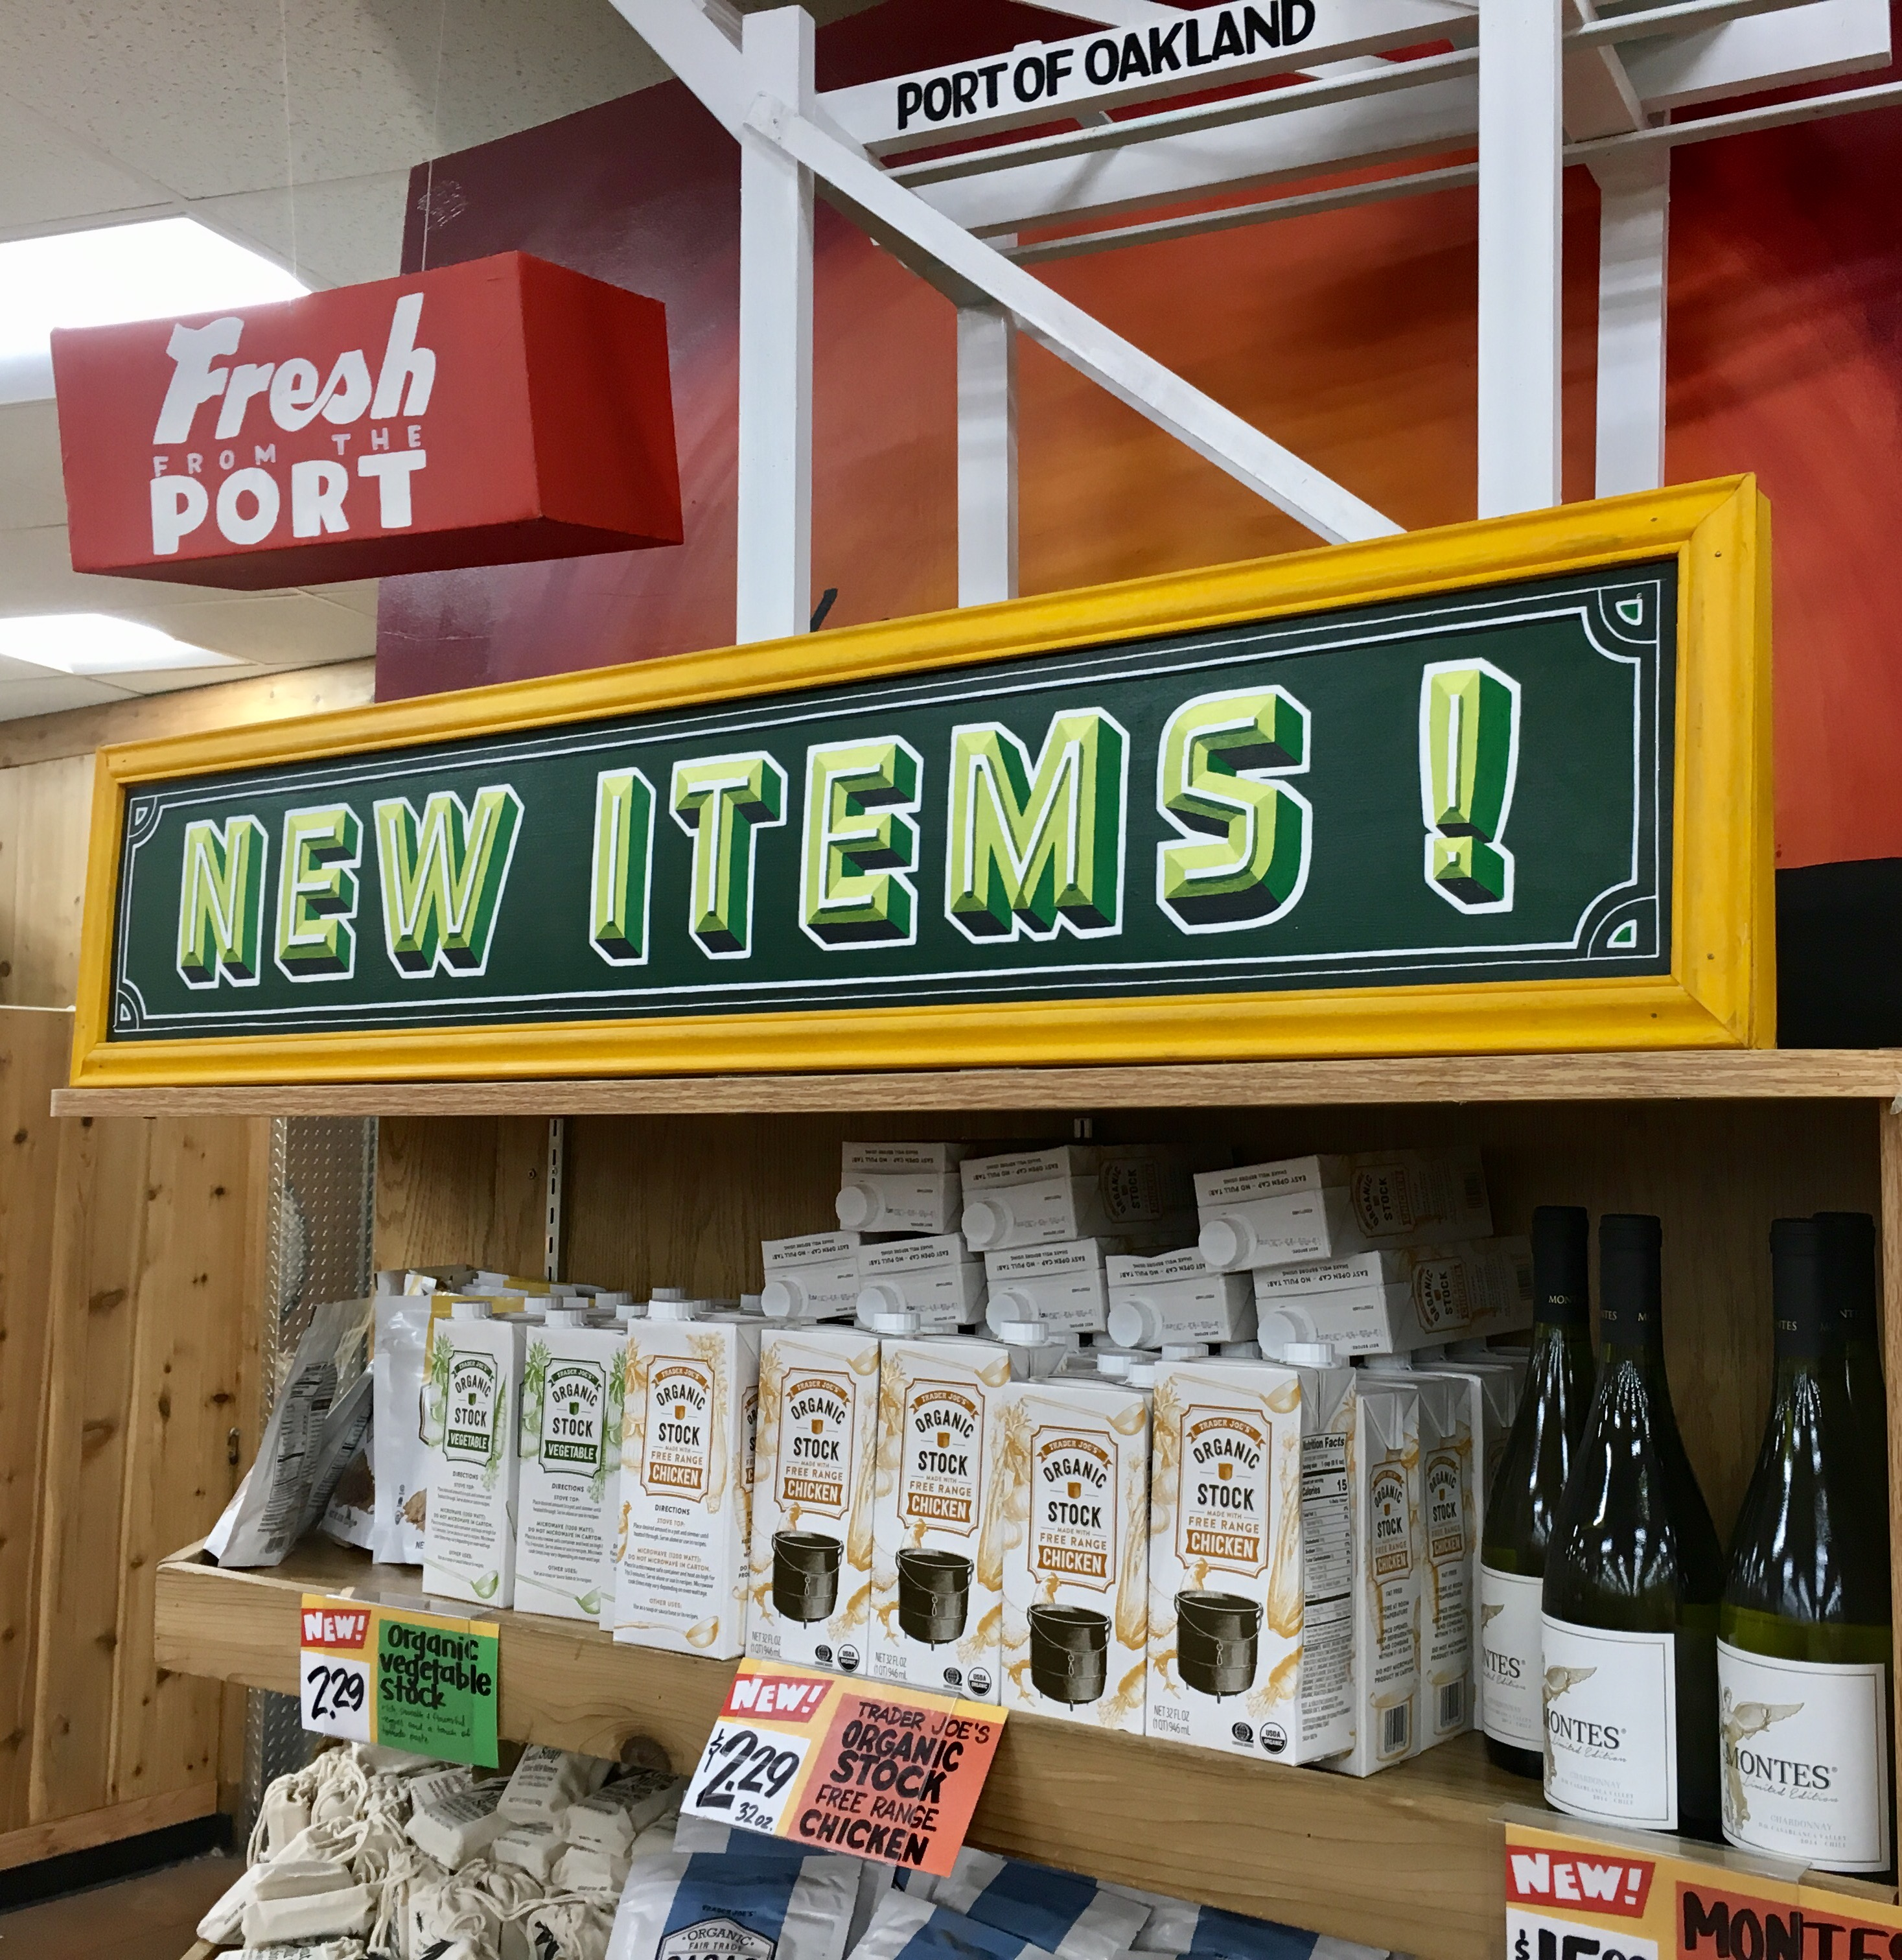 "New Items !"" sign, Trader Joe\'s Rockridge, Oakland - Fonts In Use"